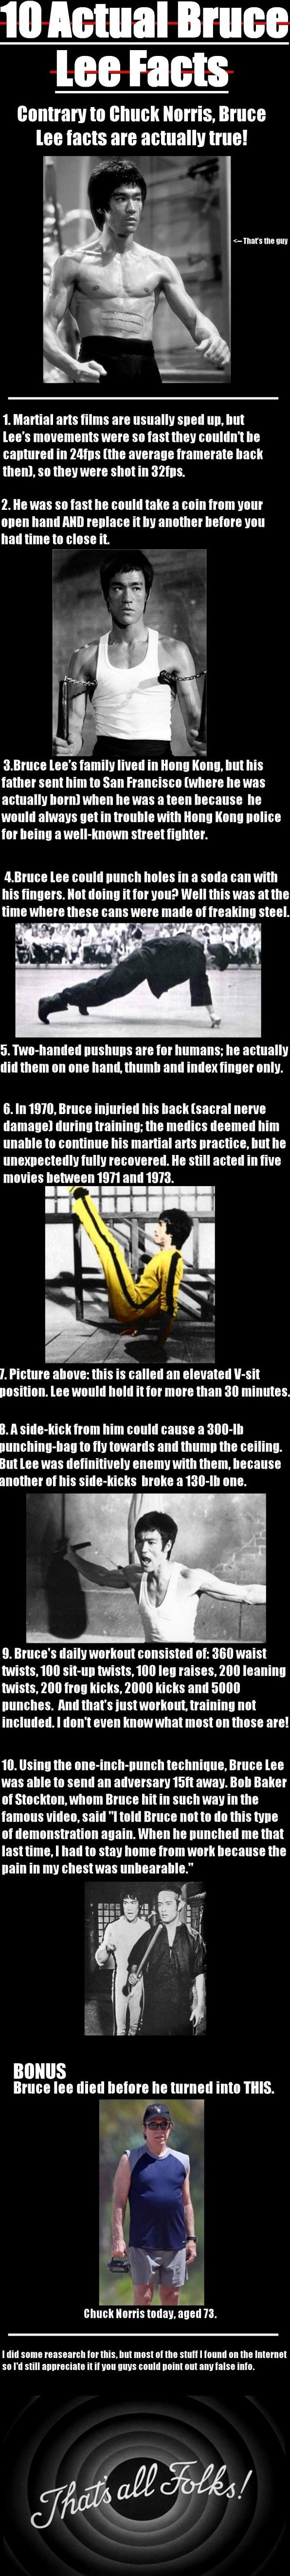 "10 Actual Bruce Lee Facts// wow! I wonder if all this is ""actually"" still it's pretty impressive!"